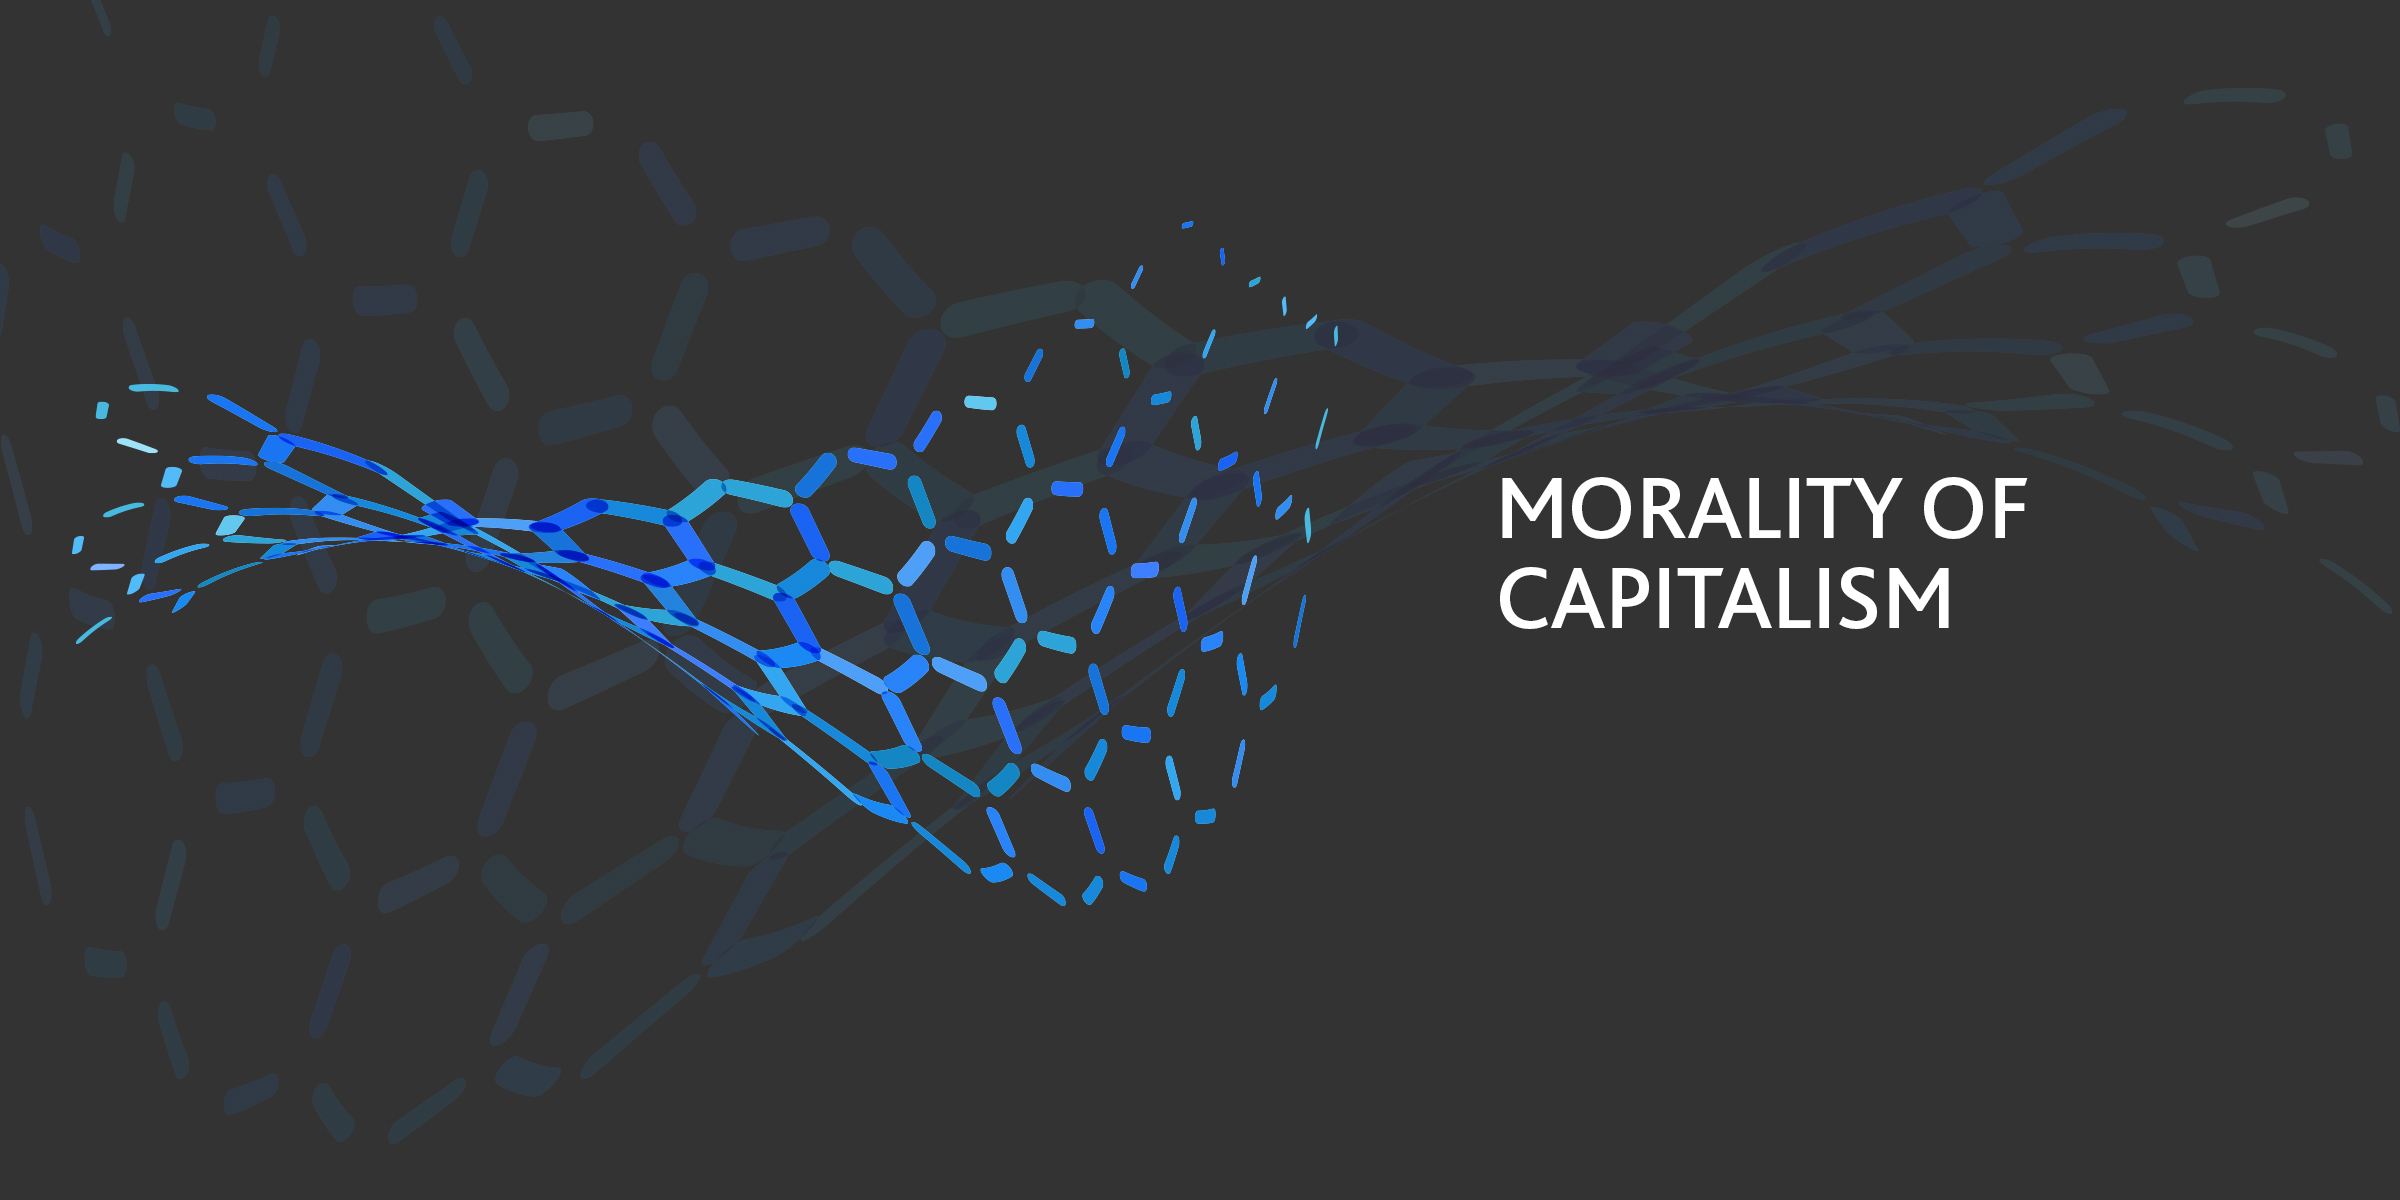 moral economic system The point for economic analysis, most of which is a matter of understanding and predicting the consequences of various actions, is that the relevance of economic analysis to policymaking depends, in part, on what one believes is the final source of value standards.